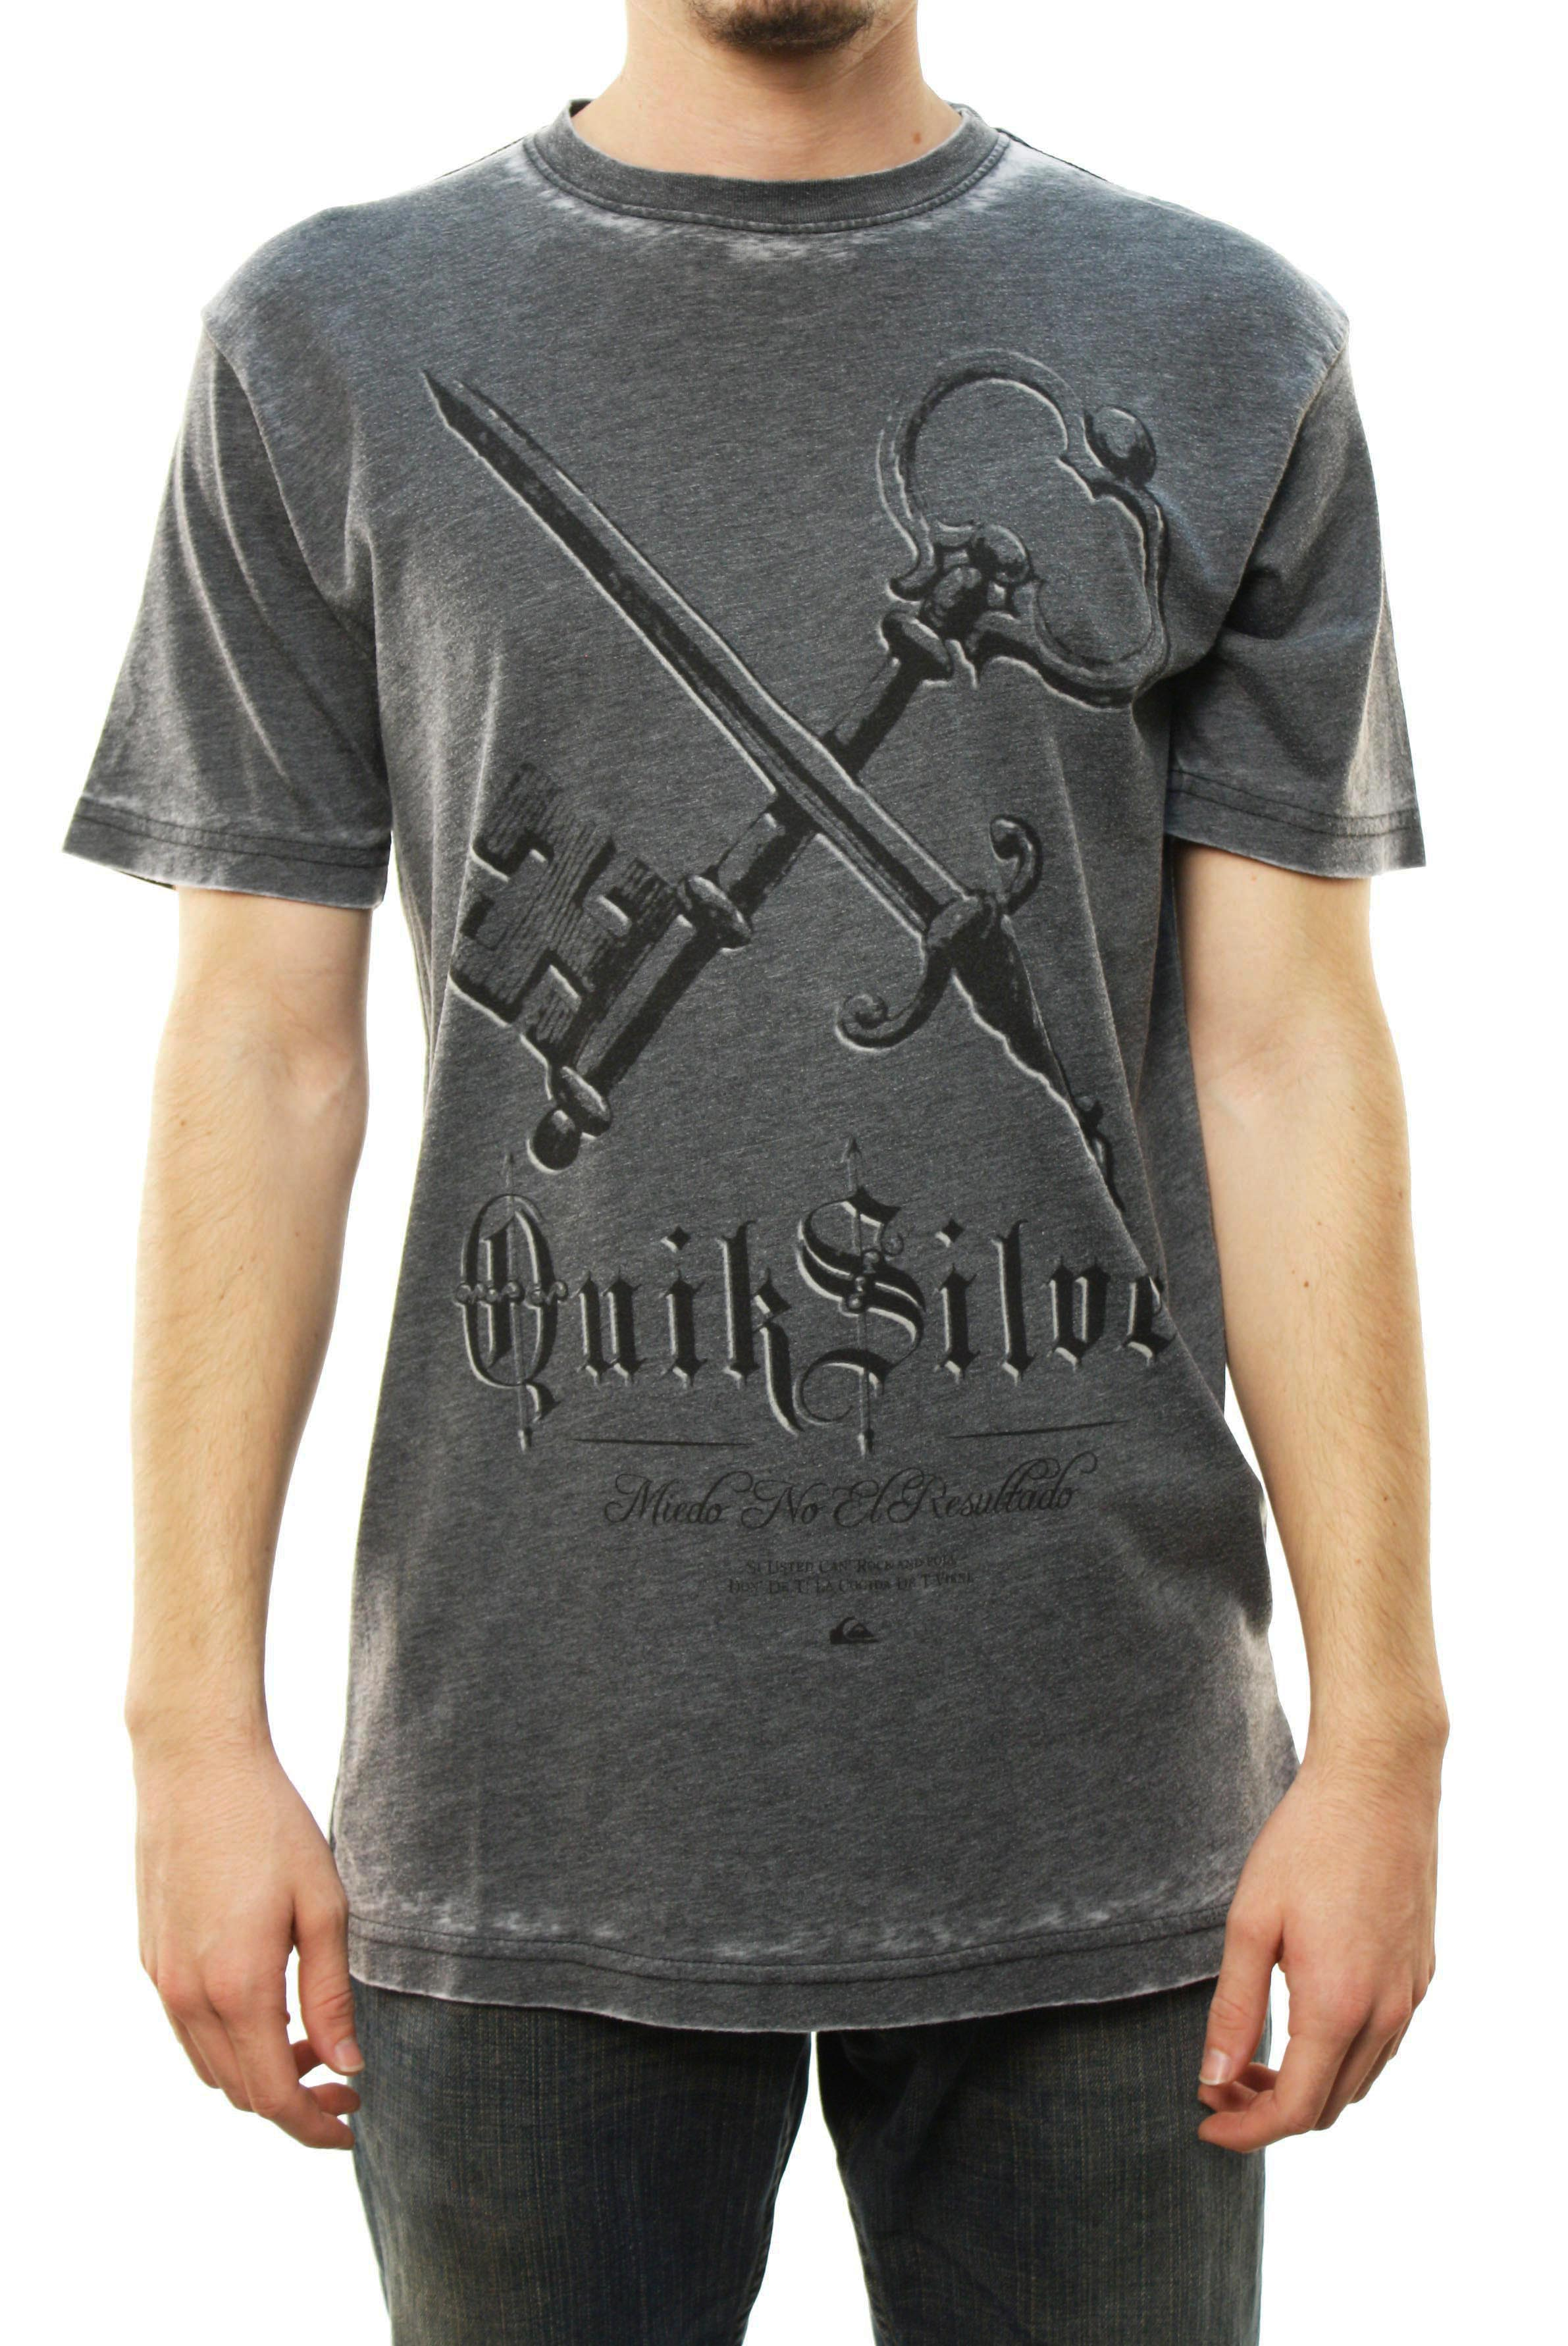 "Quiksilver Men's ""The Key MTZ"" T-Shirt Dark Gray R12TZPC1-DKC at Sears.com"